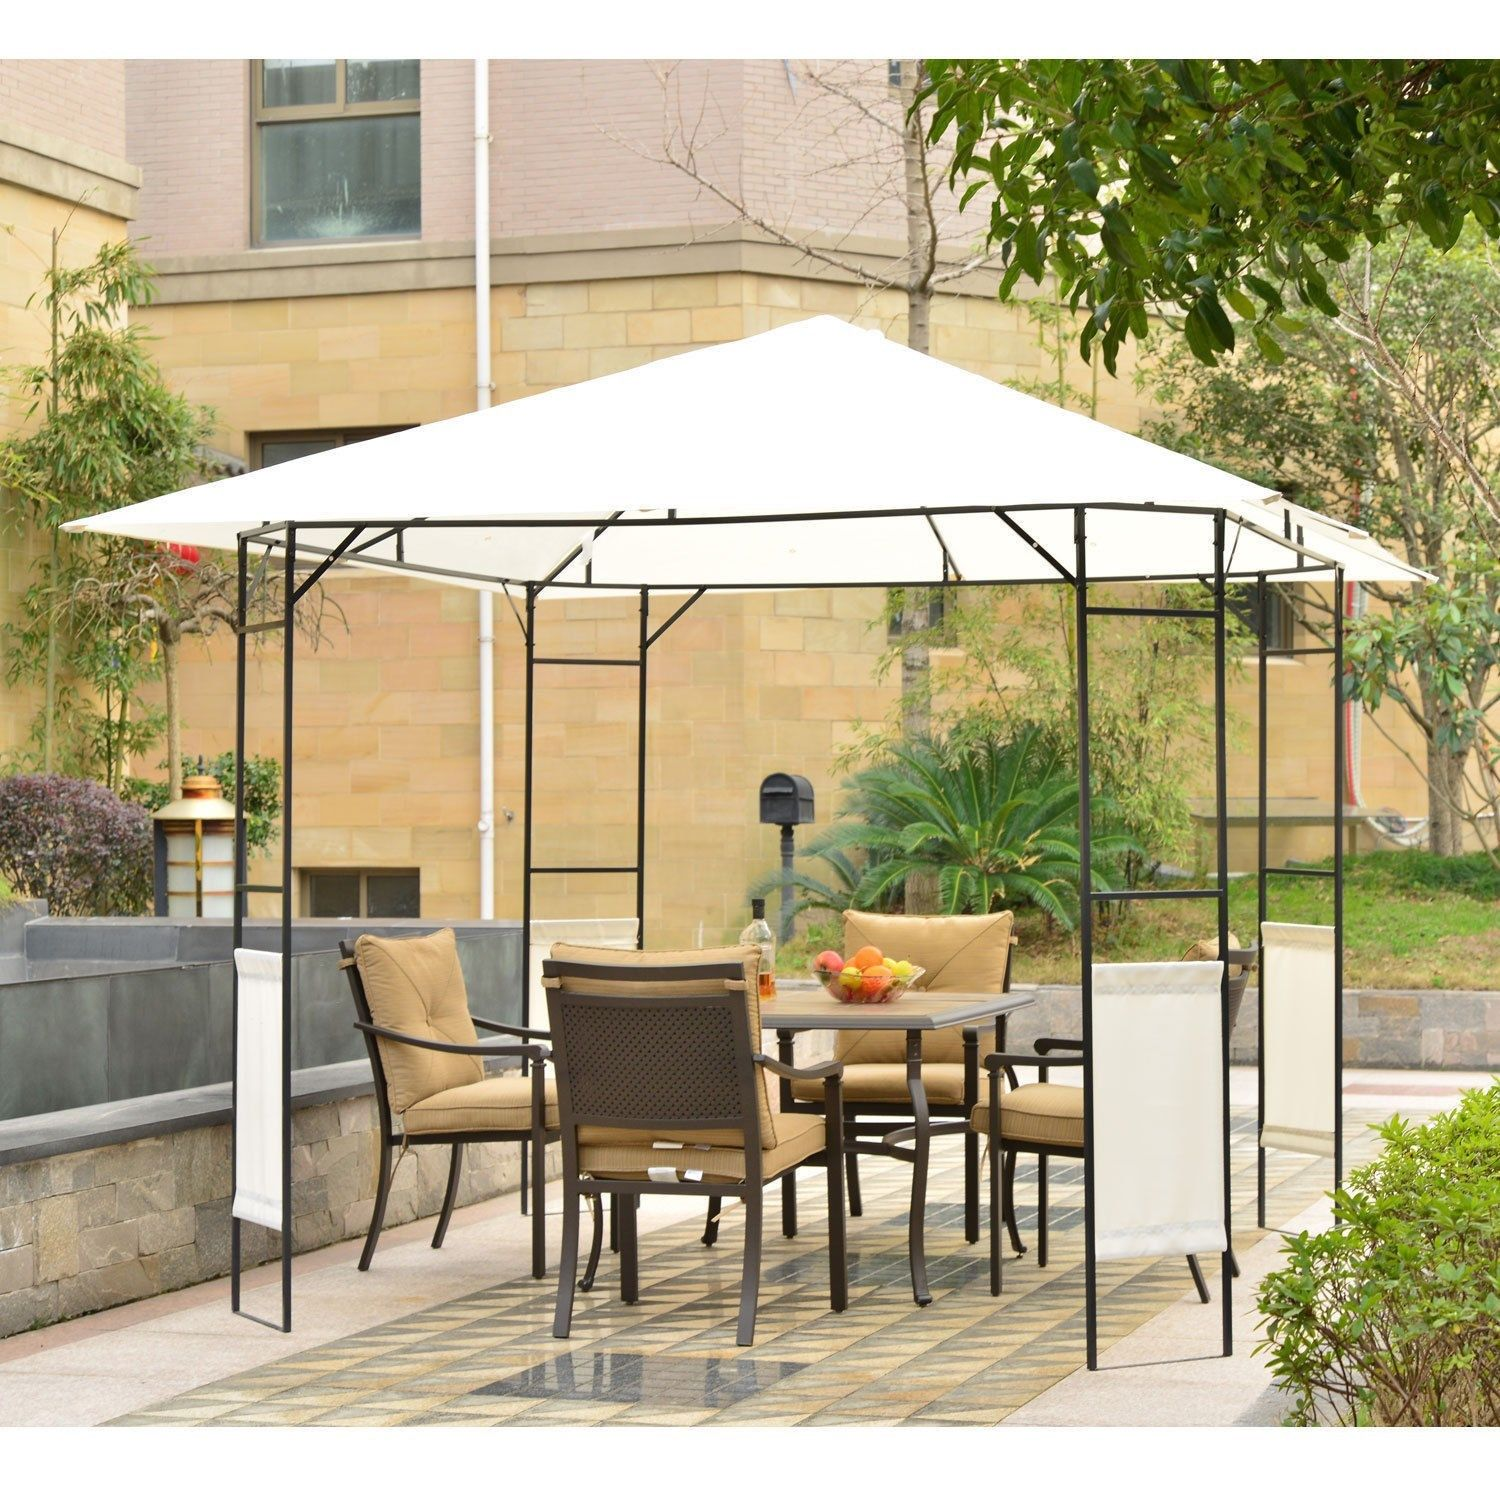 Image of CAD $159.99 Outsunny 10'x10' Modern Outdoor Gazebo for Garden and Festivals, Patio Party Tent, Wedding Canopy Pavilion Cream-white / BBQ Tent Canada 46655320599